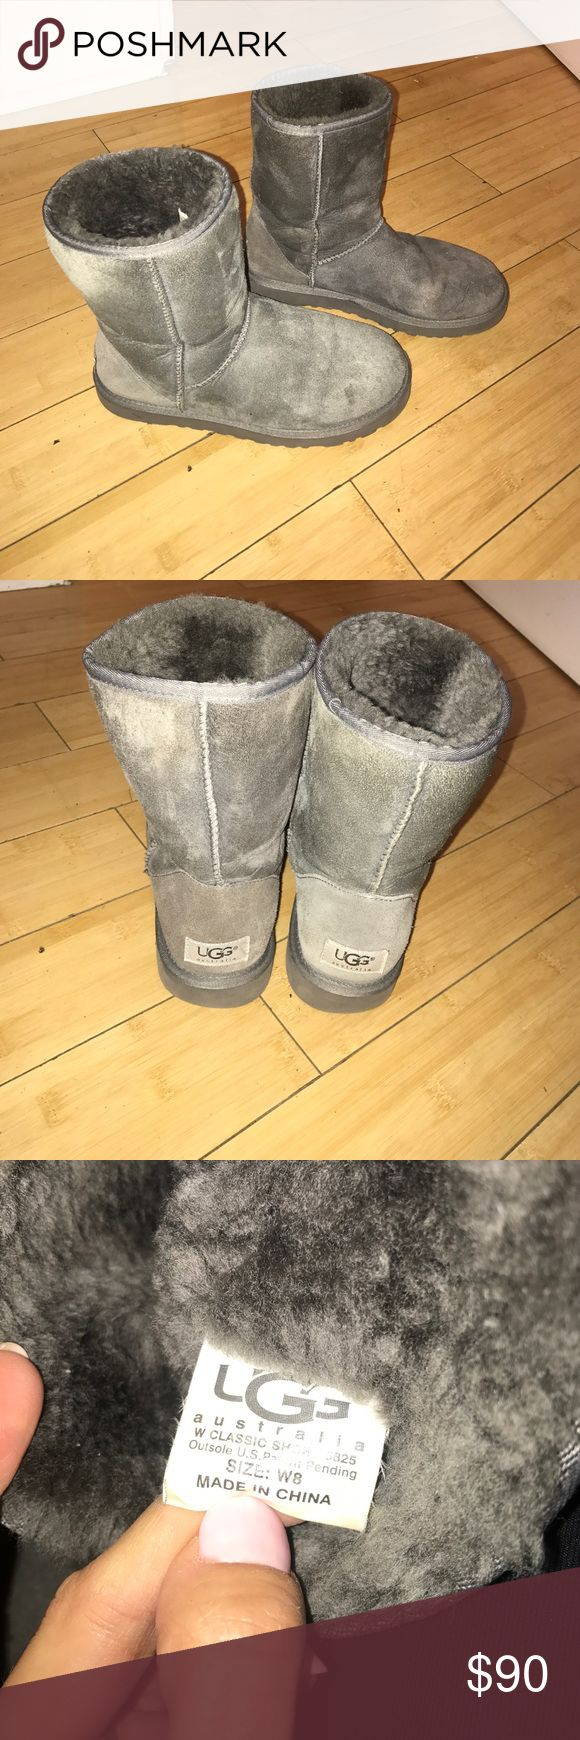 Classic Short Uggs Size 8 Get cozy in these authentic Classic Short Ugg boots! Just brushed them and the bottom treads are in perfect condition 👌 UGG Shoes Winter & Rain Boots